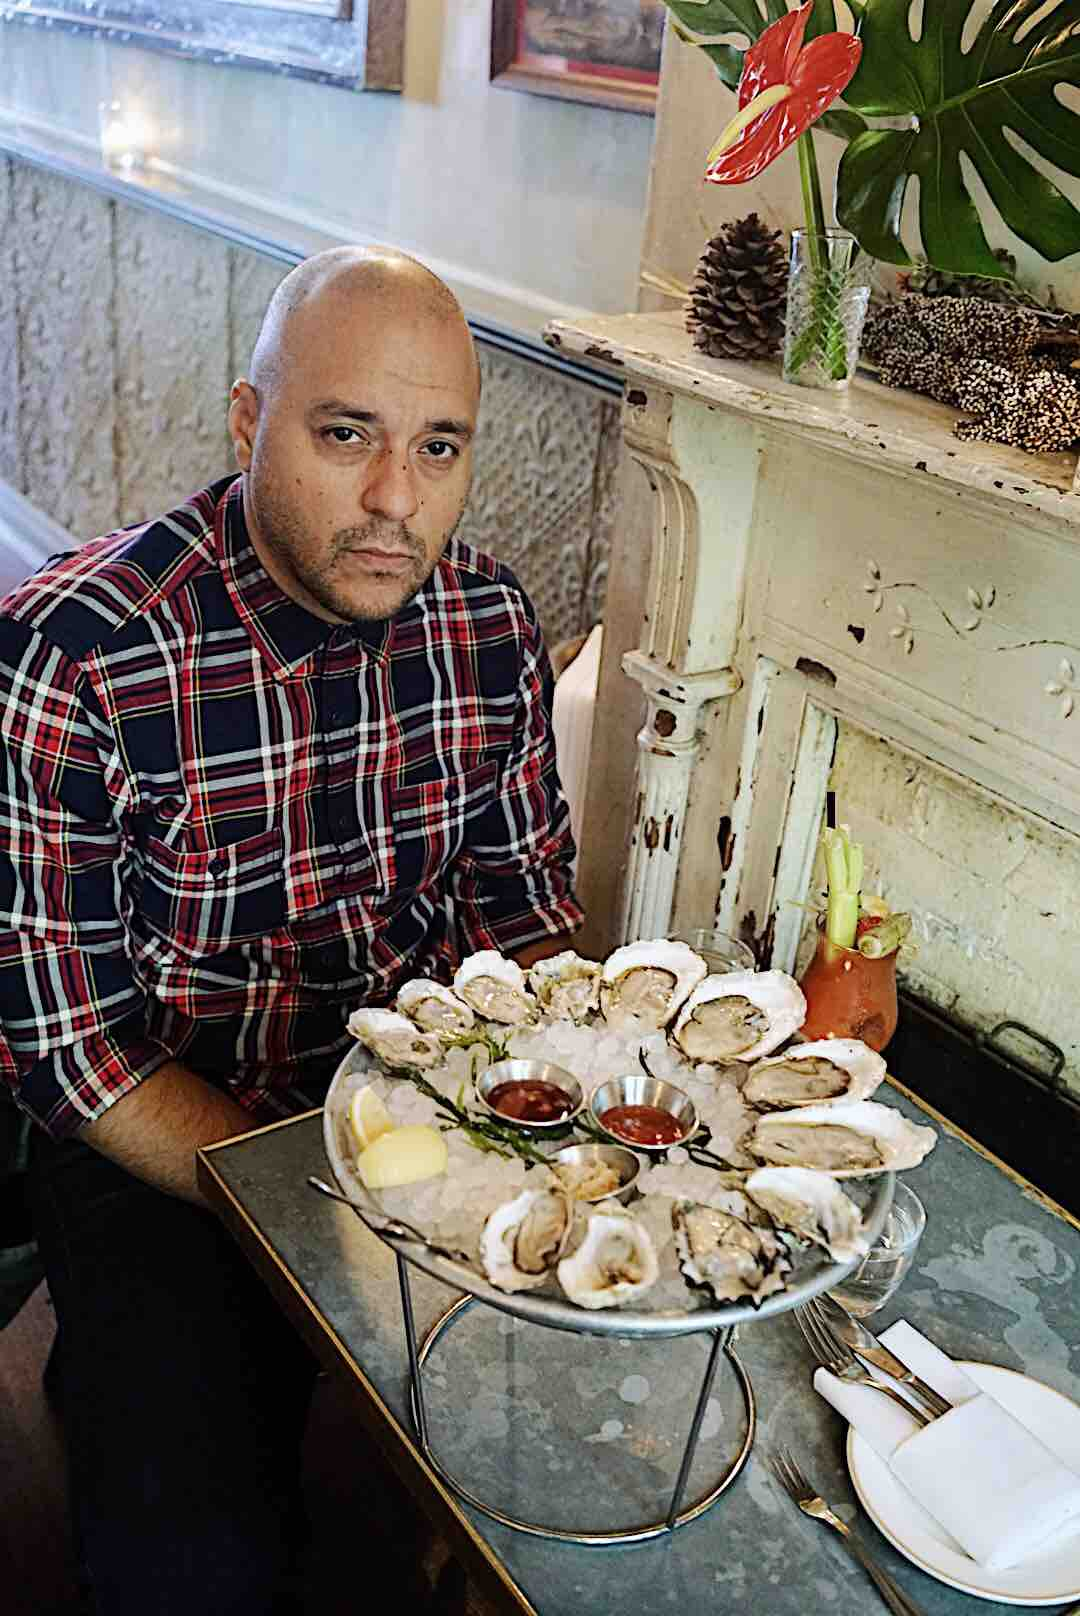 During the week there is a killer oyster happy hour, it can get crowded during the peek hours but its all so worth NYC's best oyster program and cocktails made by expert bartenders.